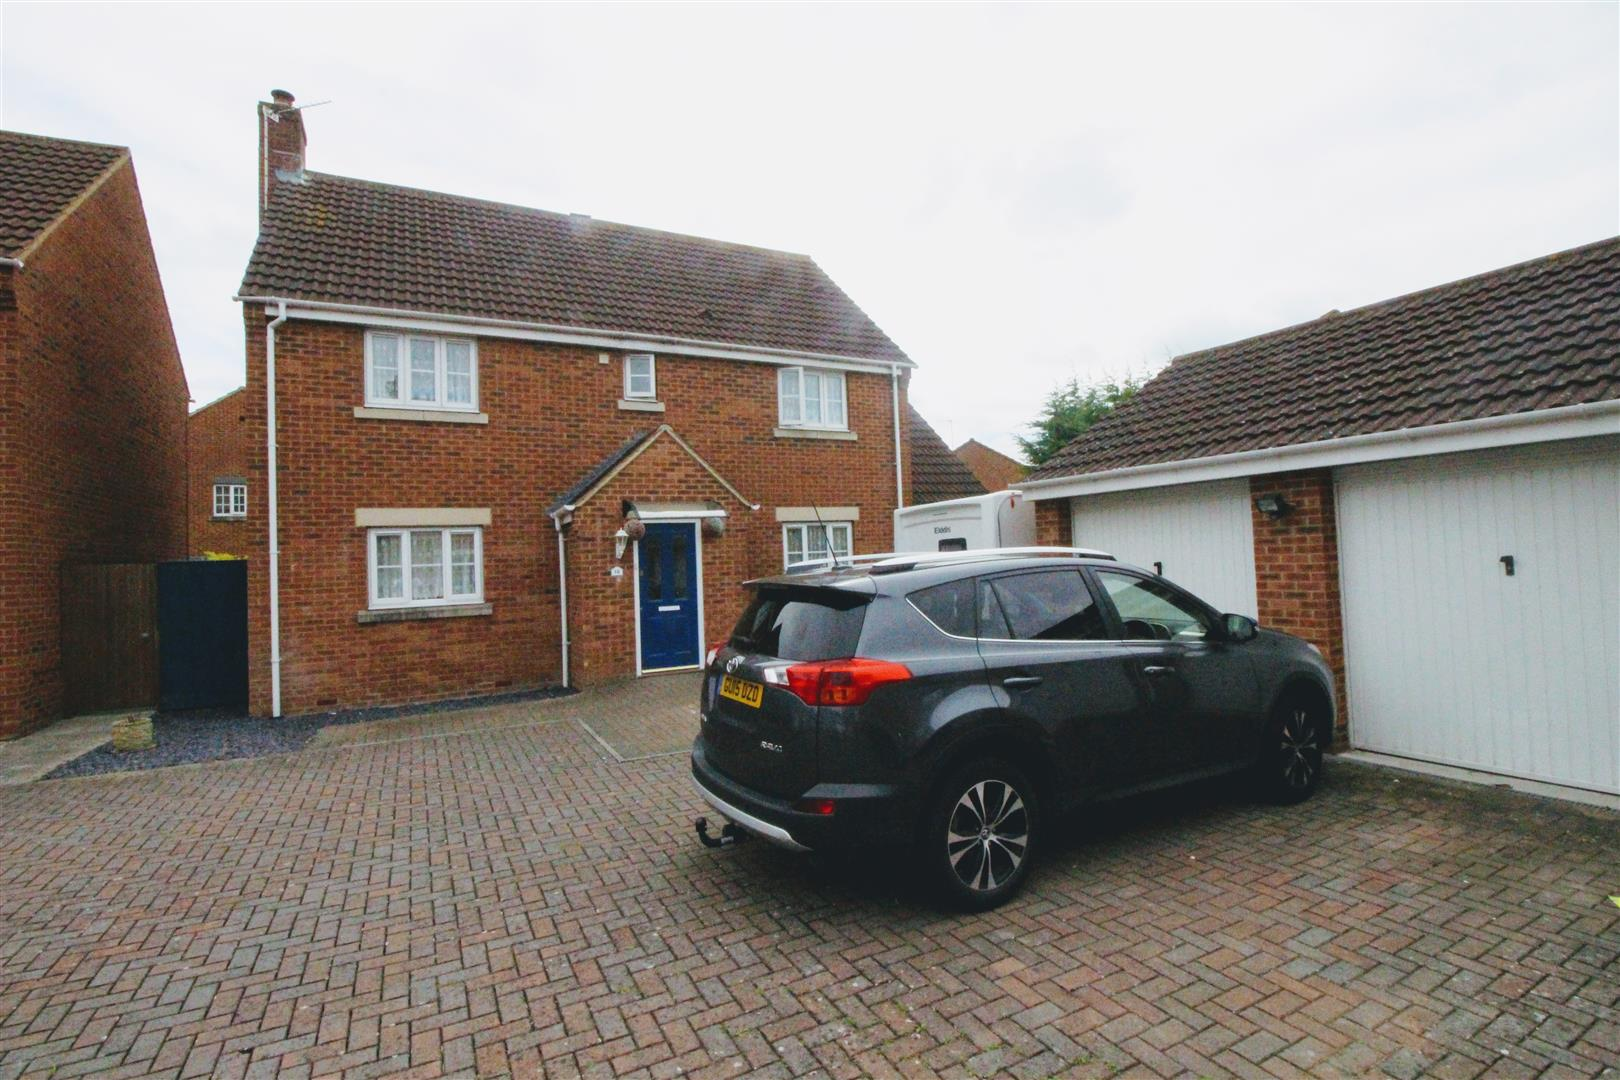 4 Bedrooms Detached House for sale in Stratton St. Margaret, Swindon